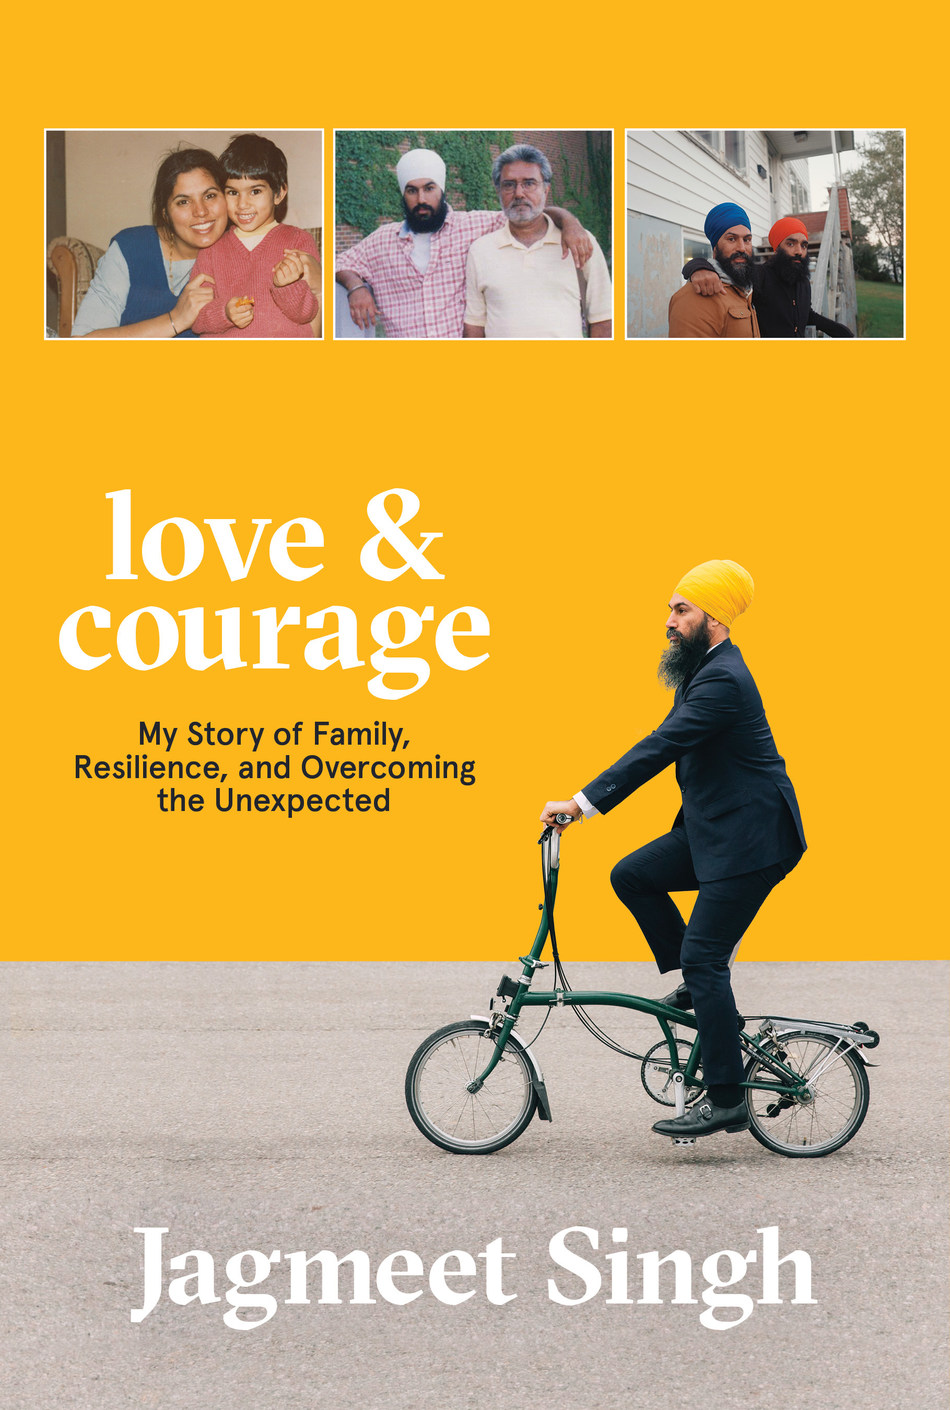 Love & Courage by Jagmeet Singh (CNW Group/Simon and Schuster Canada)